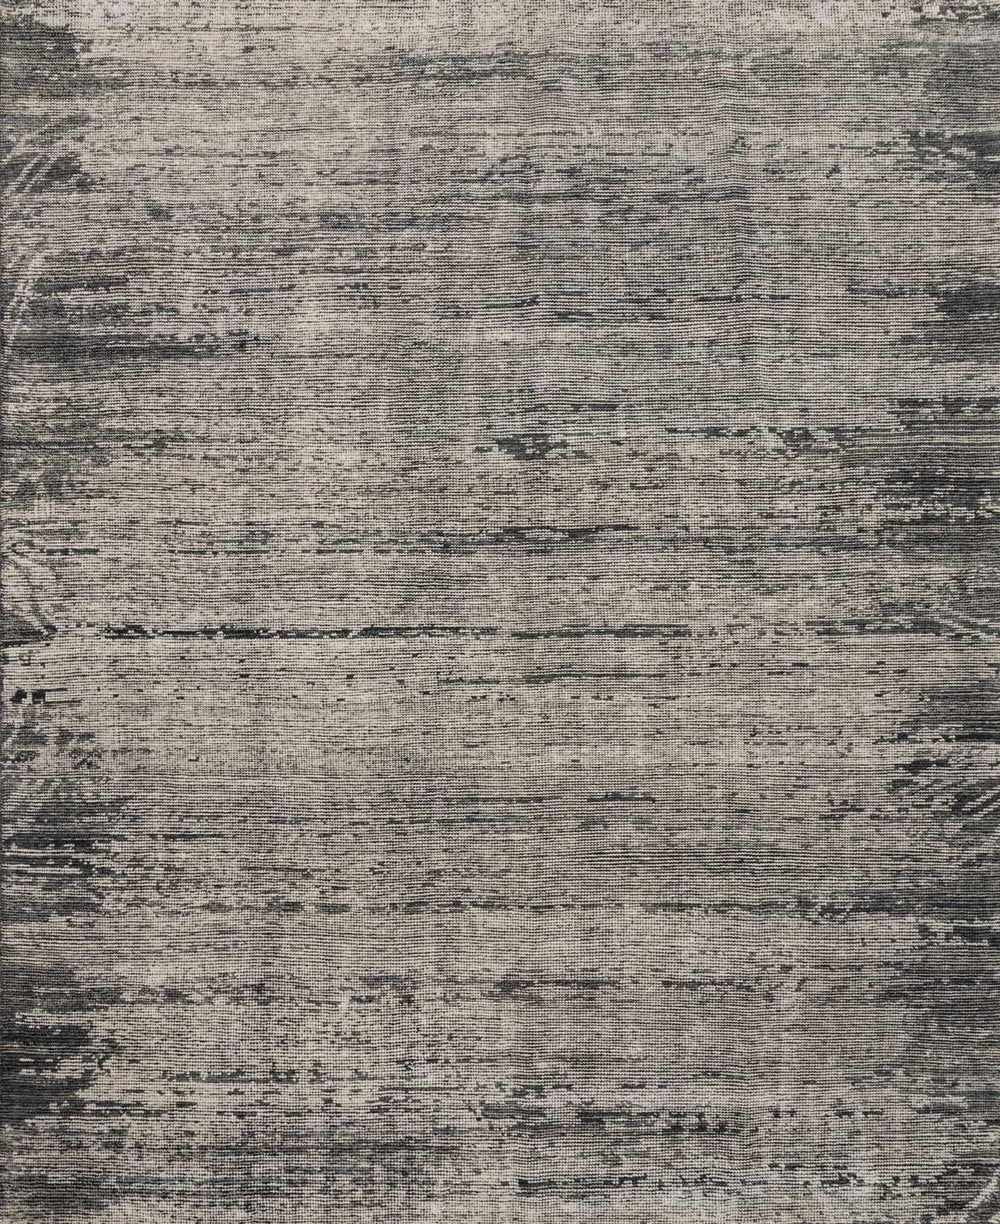 Hand-knotted in India of 100% wool, the Amara Collection creates a casual yet refined vibe with high-end appeal. Available in sizes up to 11'6'' x 15'.  Hand Knotted 100% Wool India AMM-02 Silver/Dark Grey